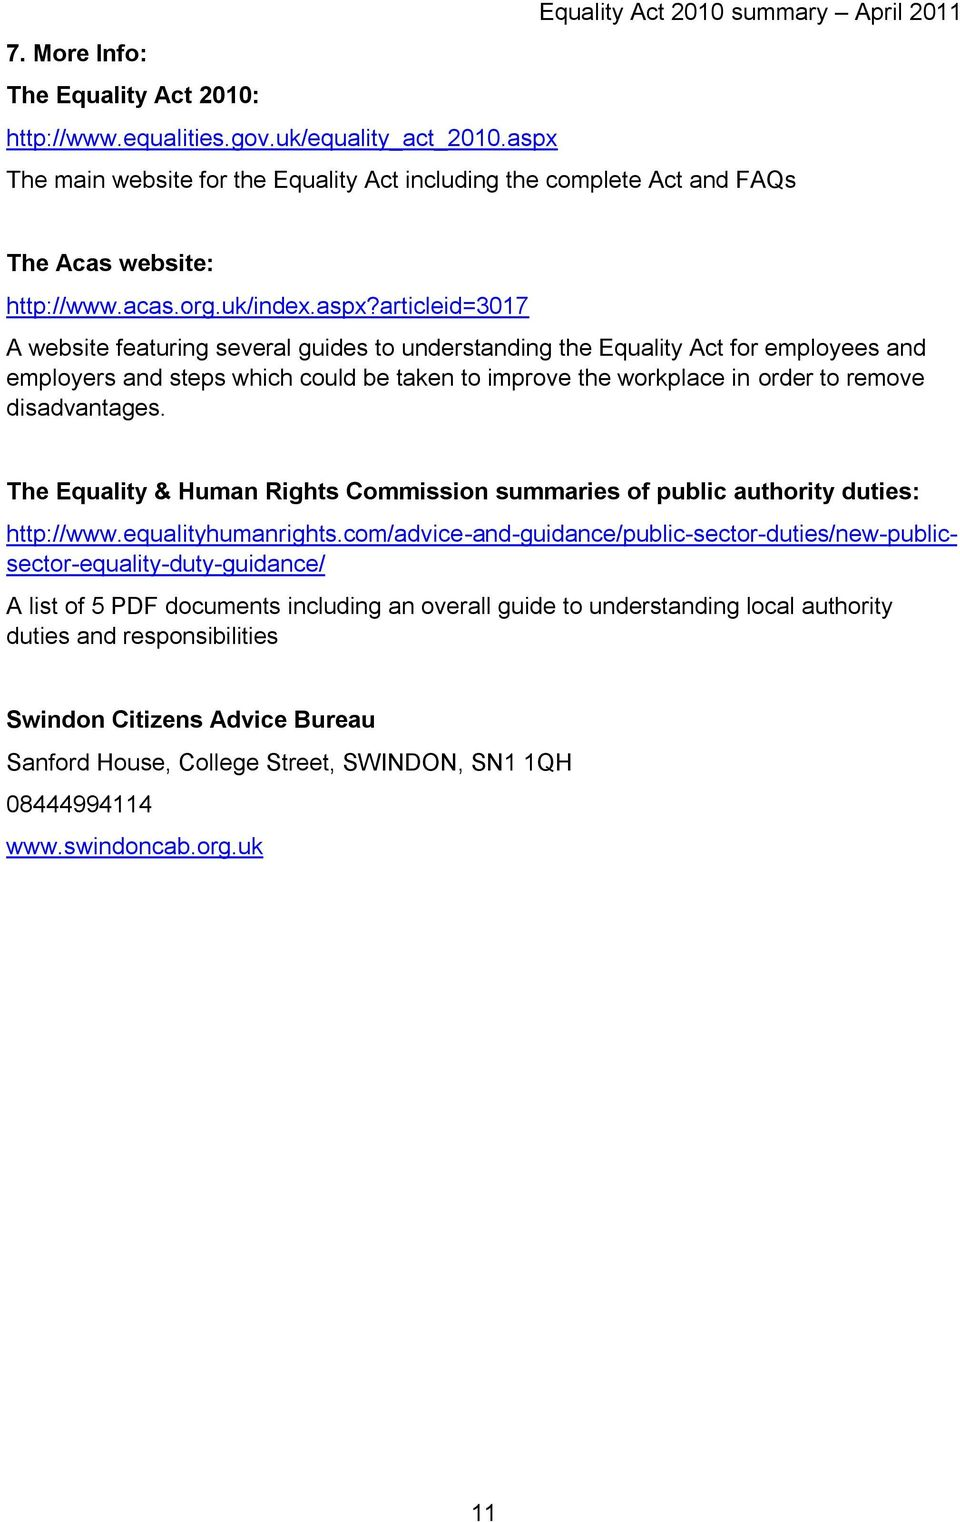 articleid=3017 A website featuring several guides to understanding the Equality Act for employees and employers and steps which could be taken to improve the workplace in order to remove